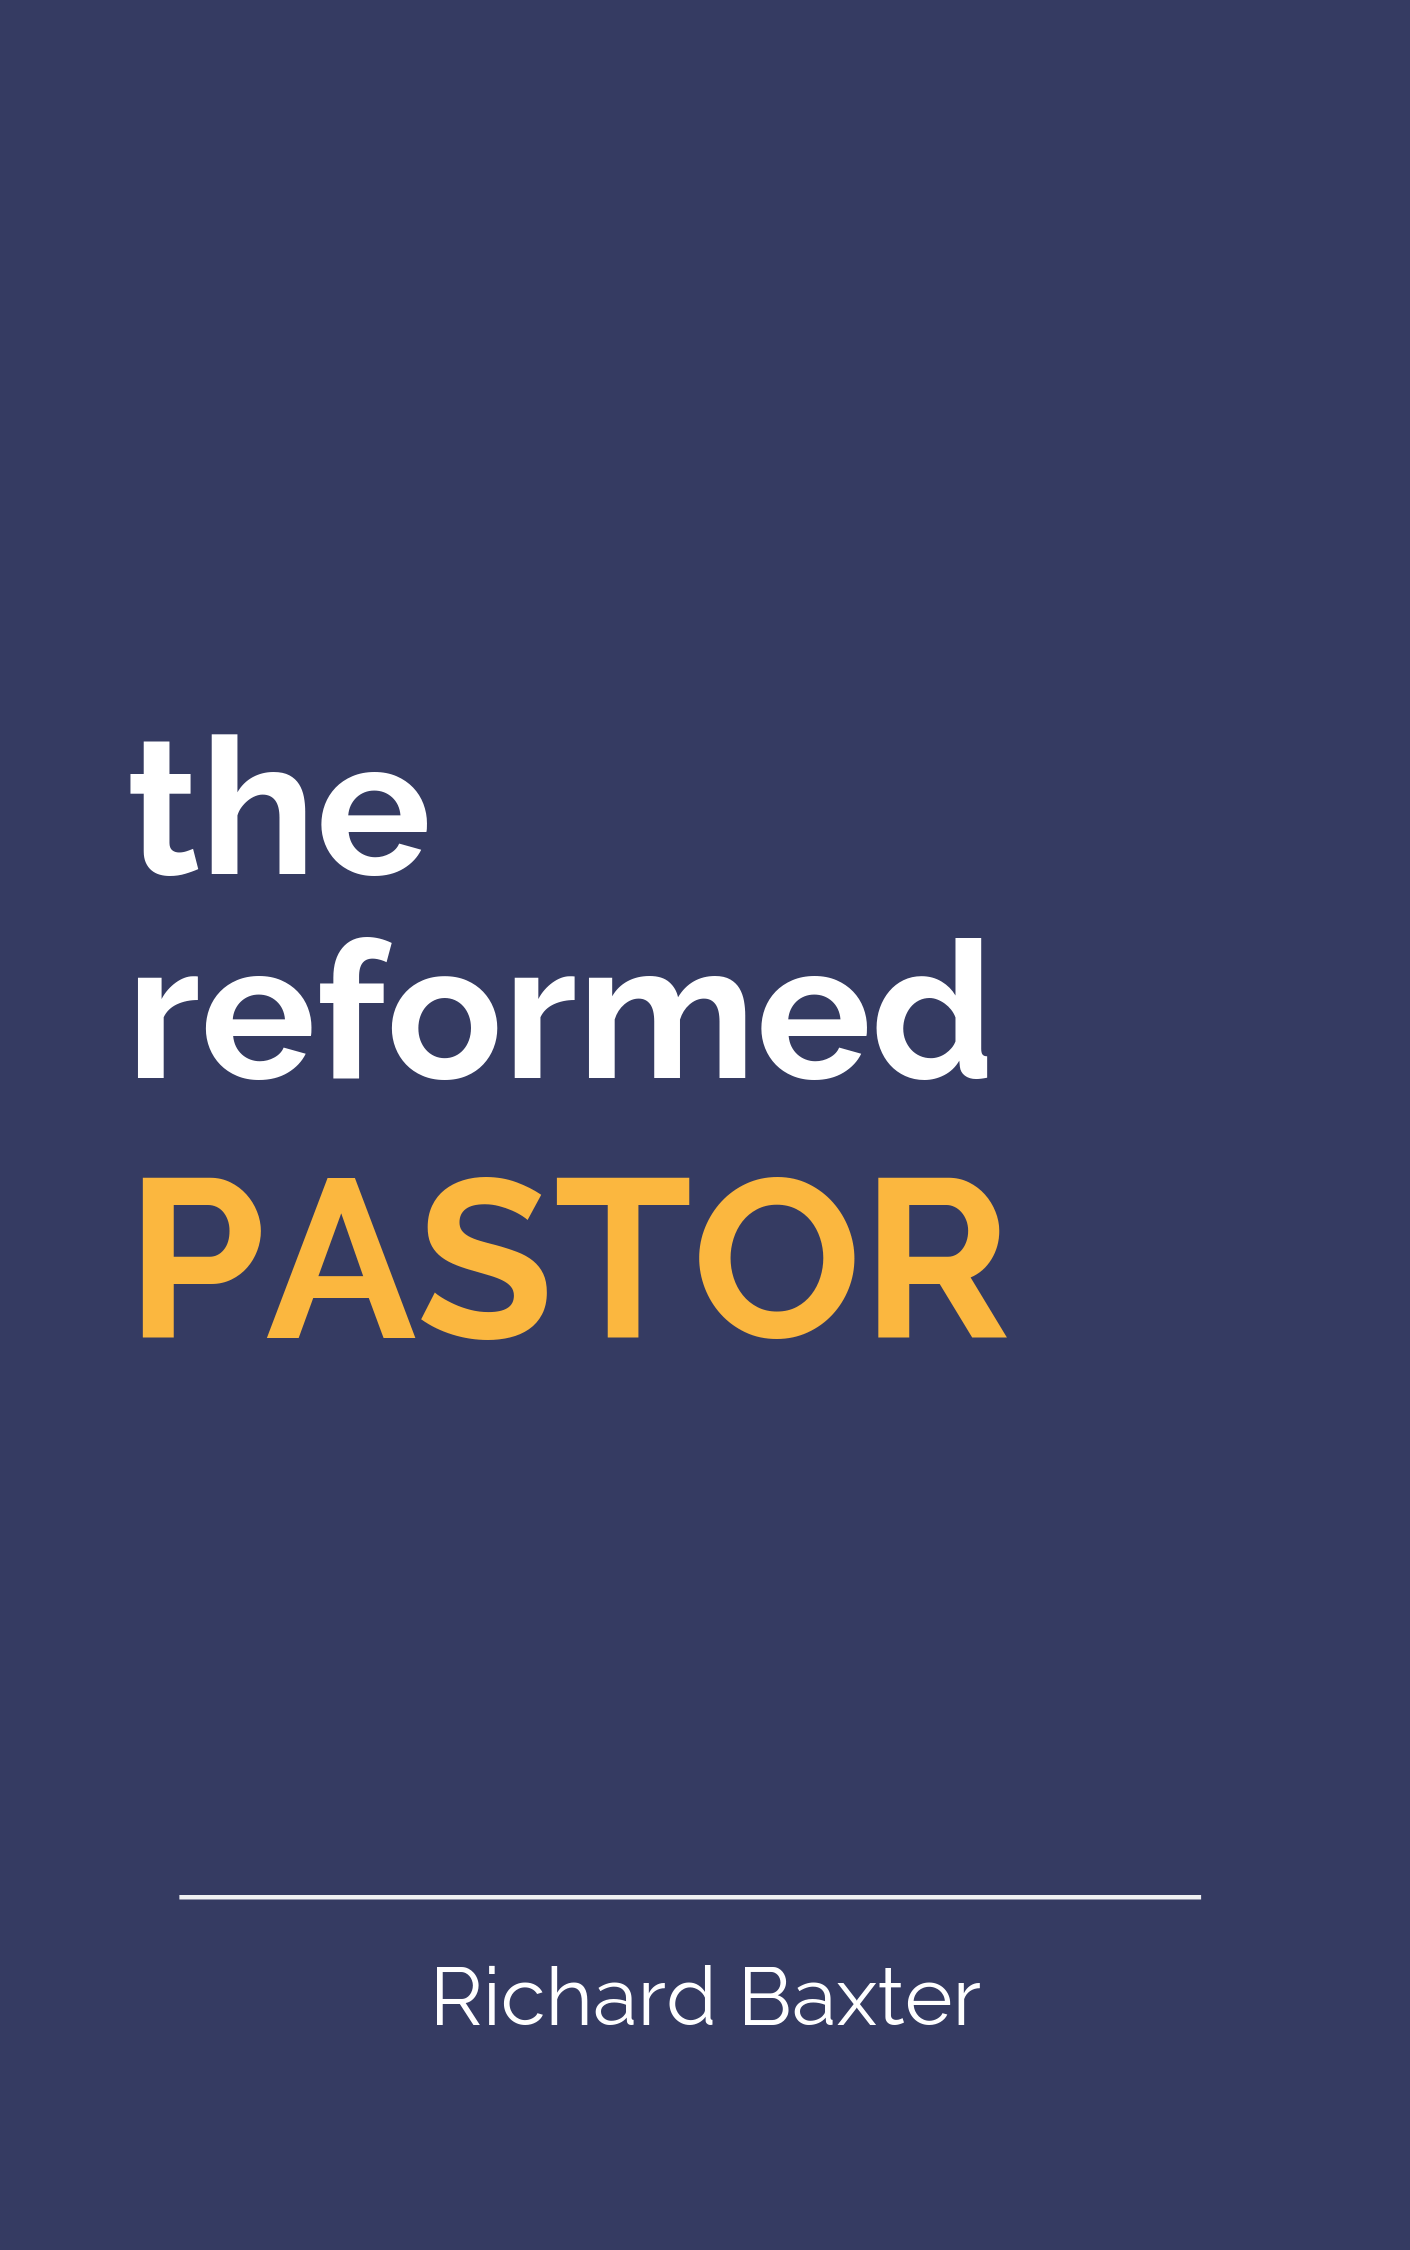 Book Summary of The Reformed Pastor by Richard Baxter